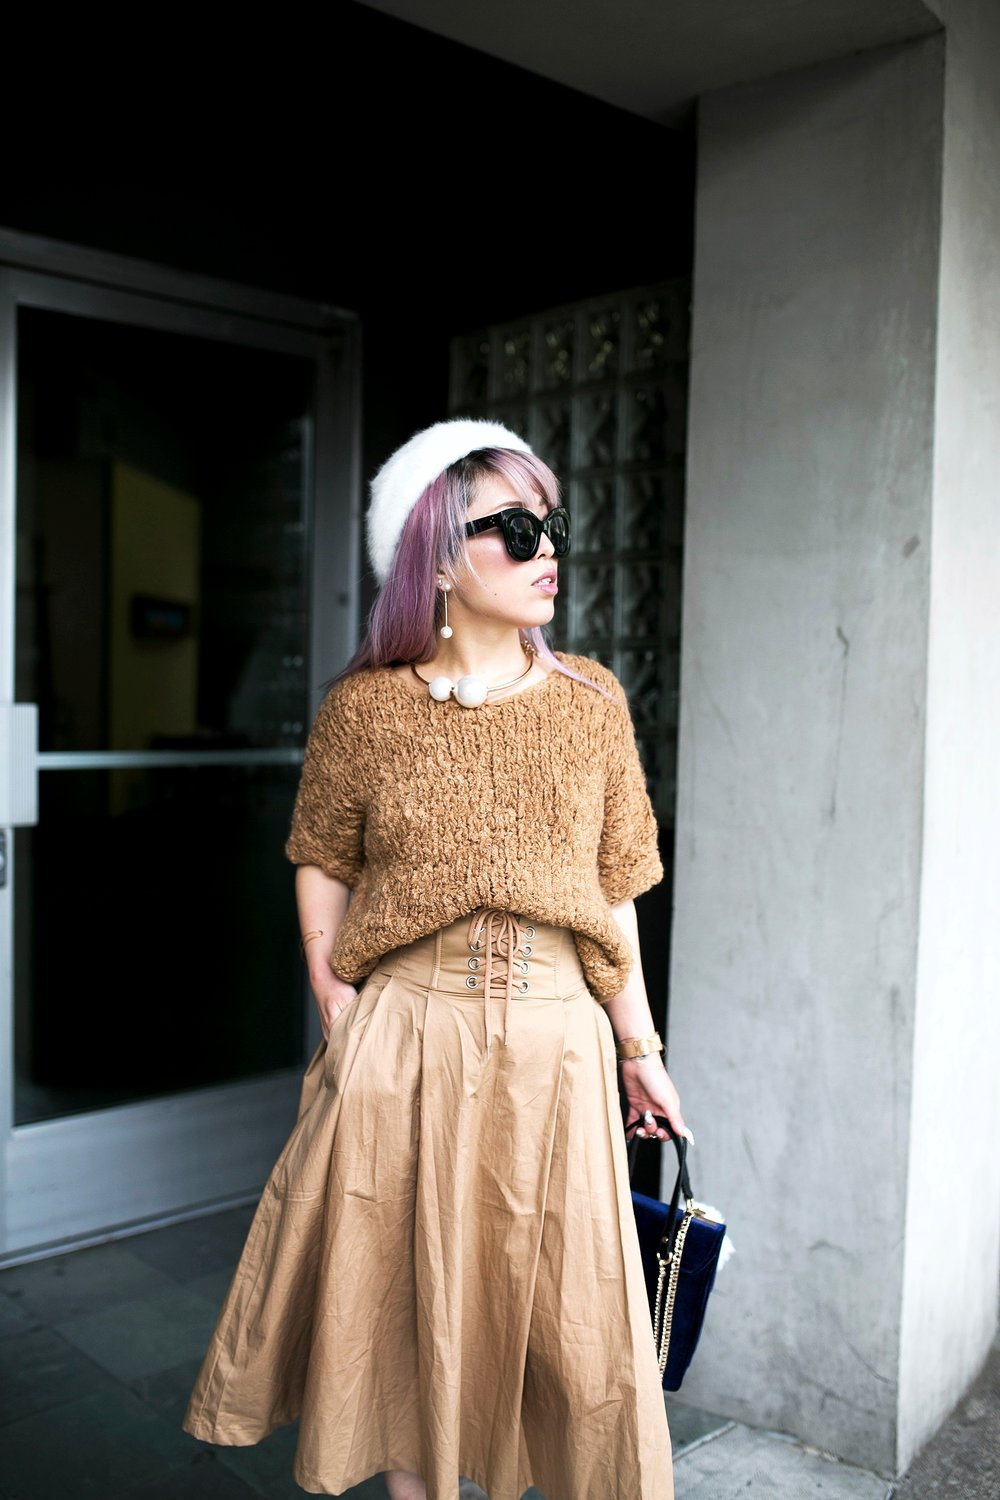 Forever 21 Fluffy White Beret, Express Pearl Collar Necklace, Thrifted Teddy Camel Top, H&M High-waisted camel midi skirt, zara velvet bag, Forever 21 White Ankle Boots, Aika's Love Closet, Seattle Fashion Style Blogger, Japanese, pink hair, street style, petite fashion  7